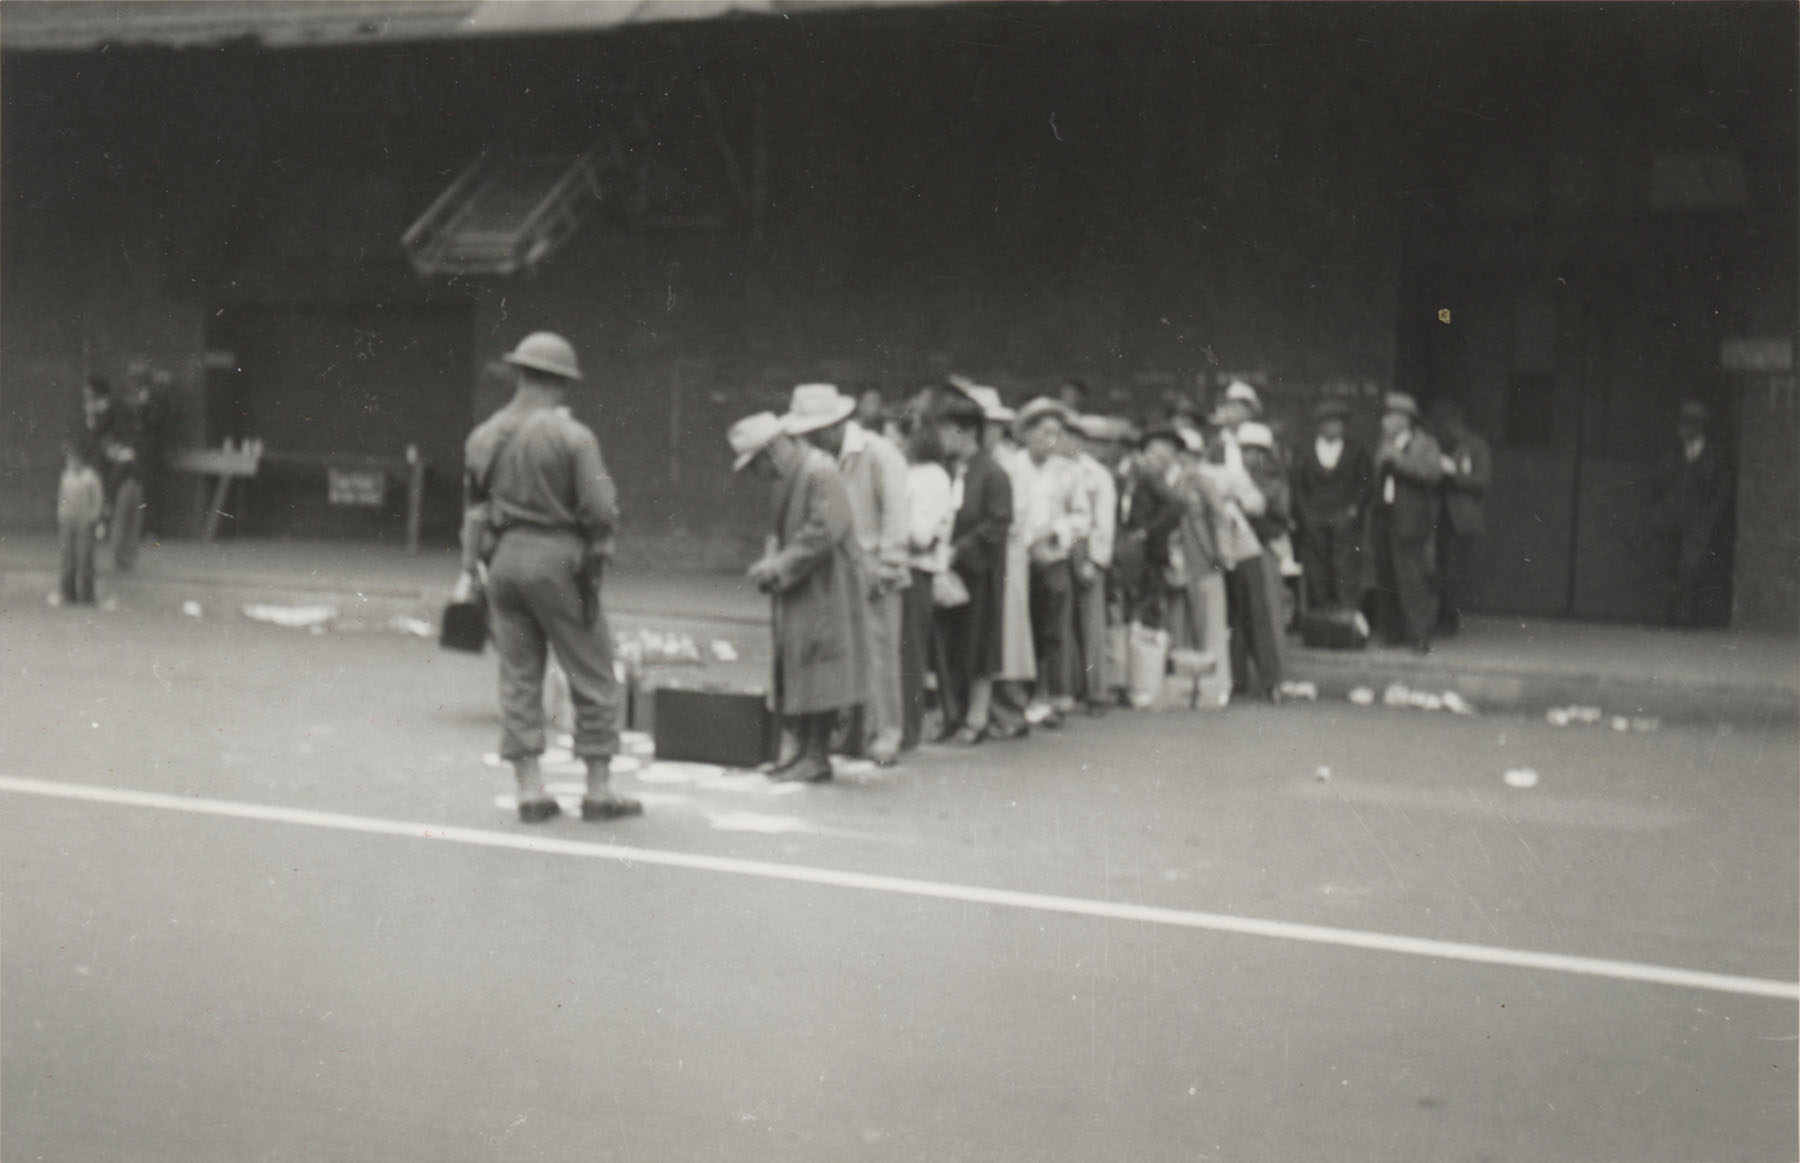 JANM-Japanese Americans lined up and under guard on central avenue.jpg